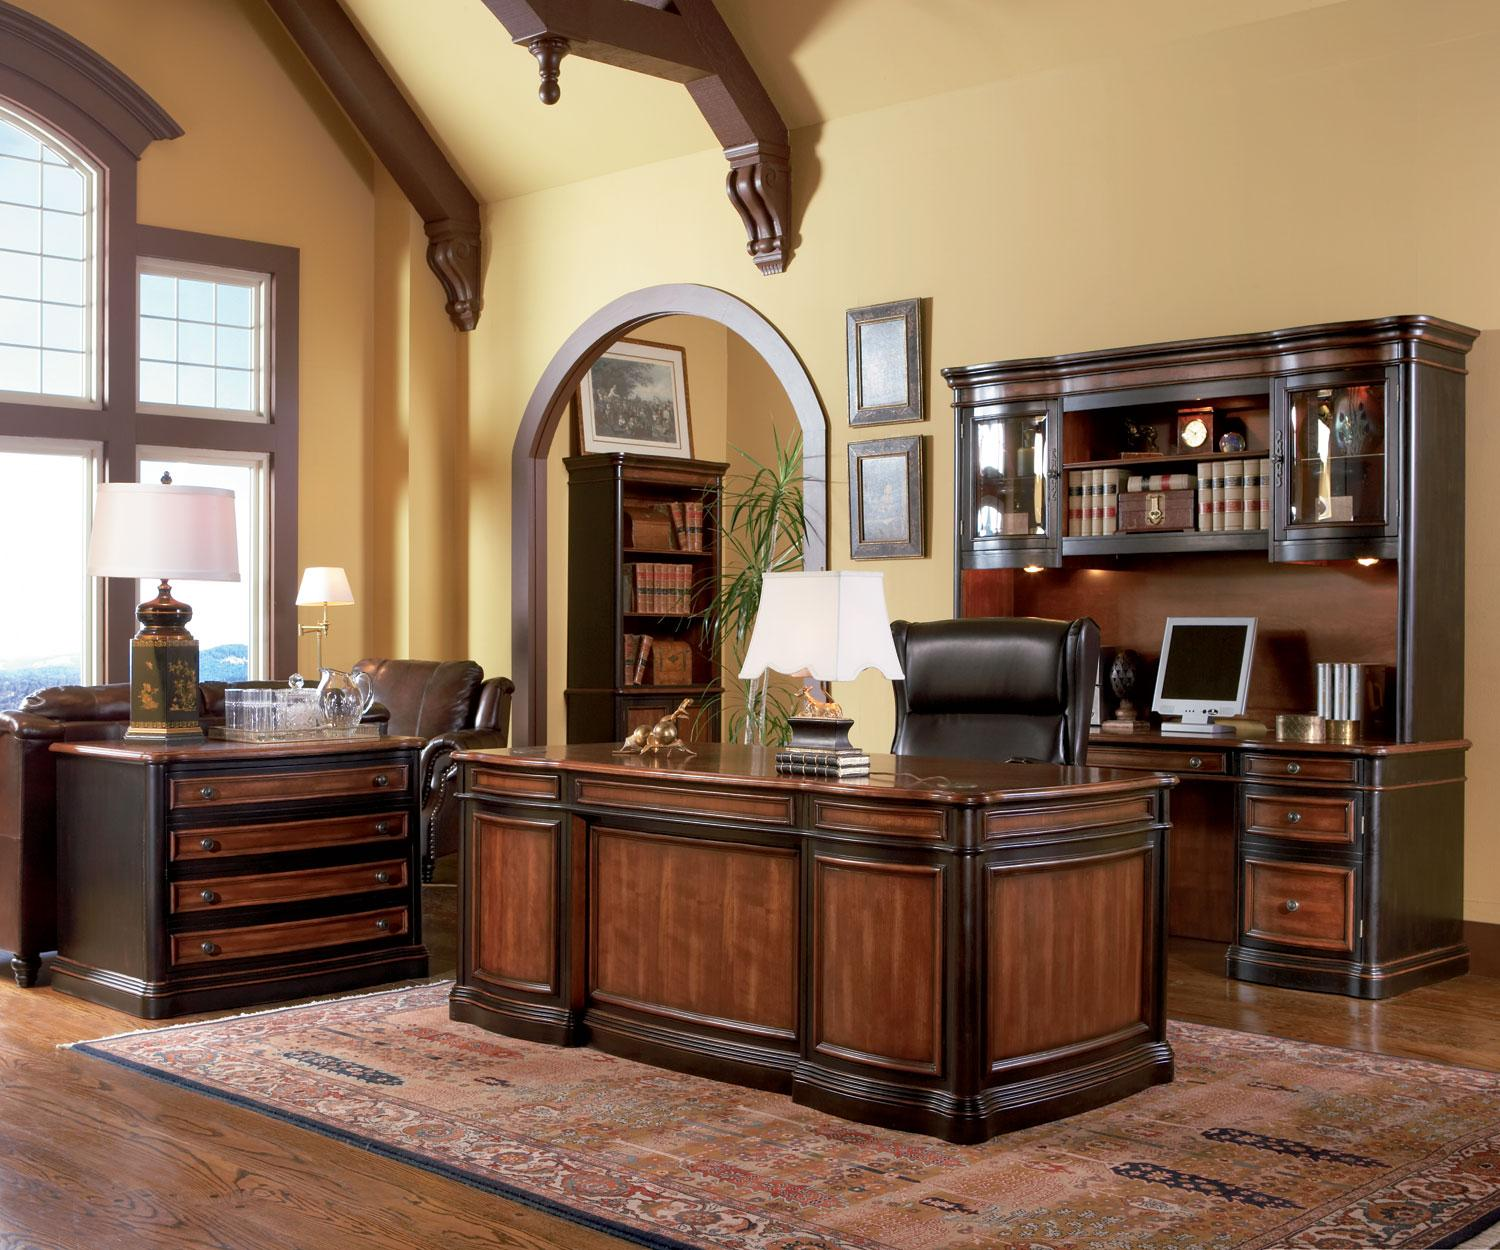 atlanta furniture specialist is proudly powered by wordpress entries rss and comments rss